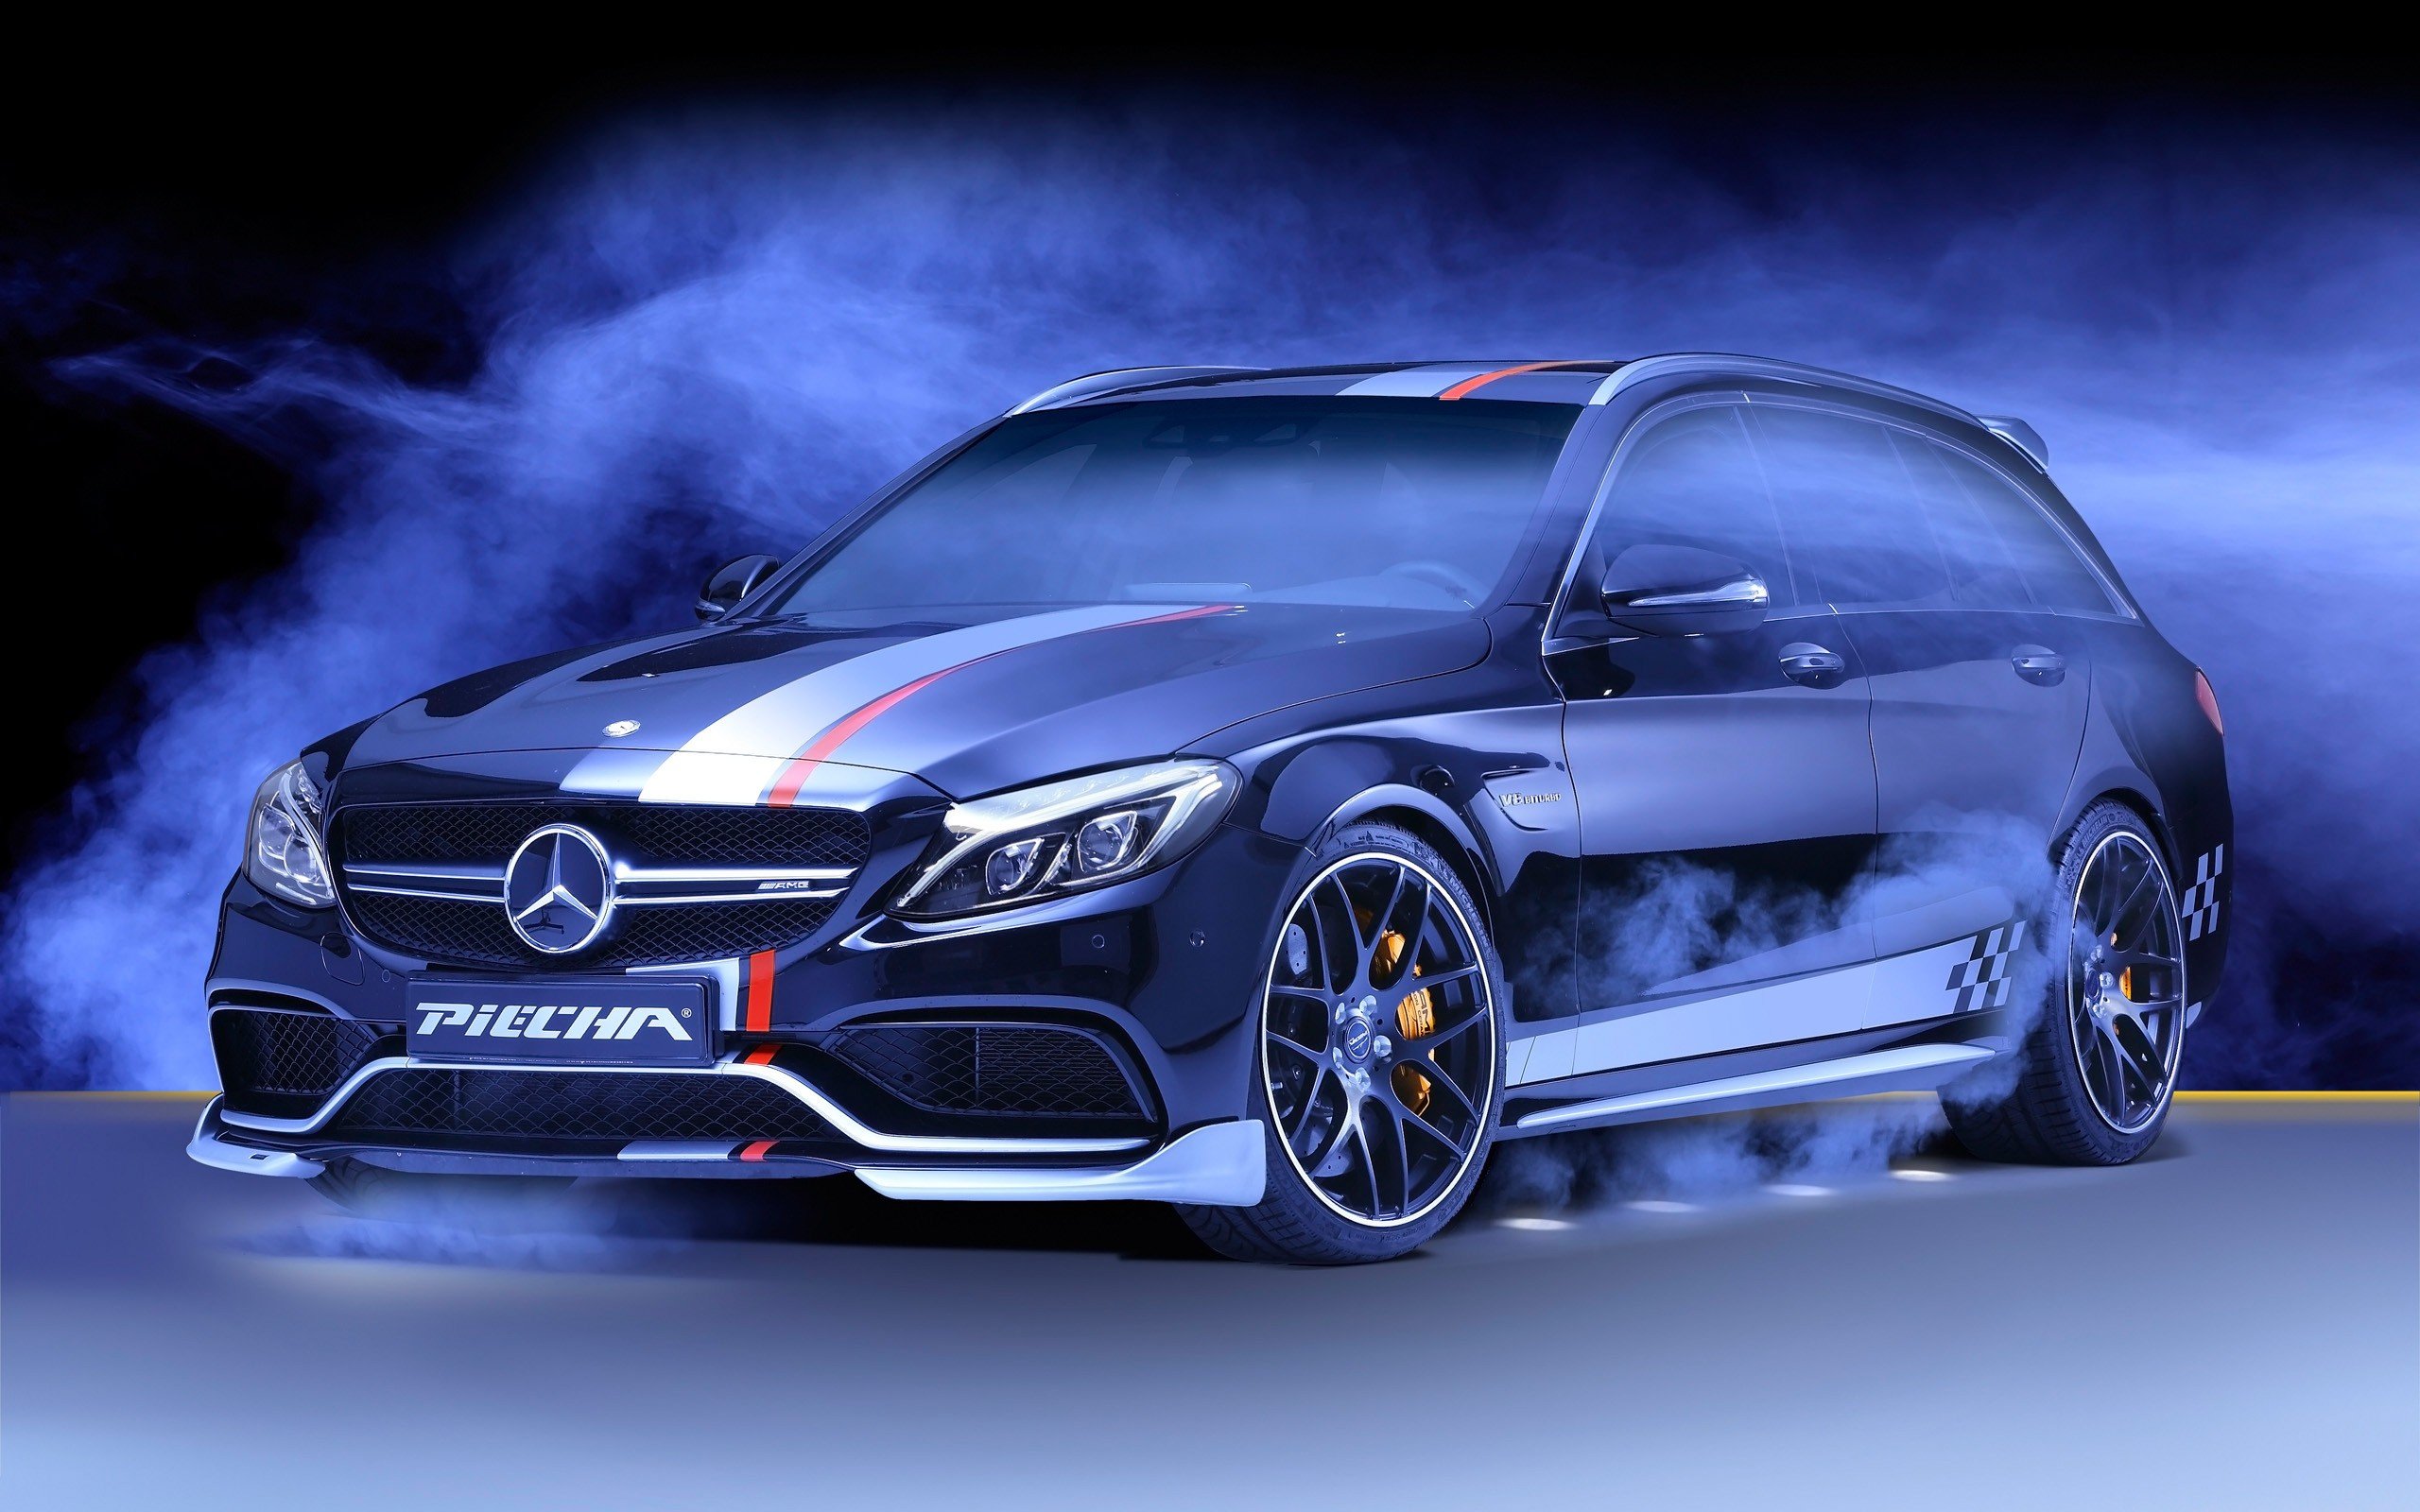 2016 Piecha Design Mercedes Amg C63 Estate Black Wallpaper